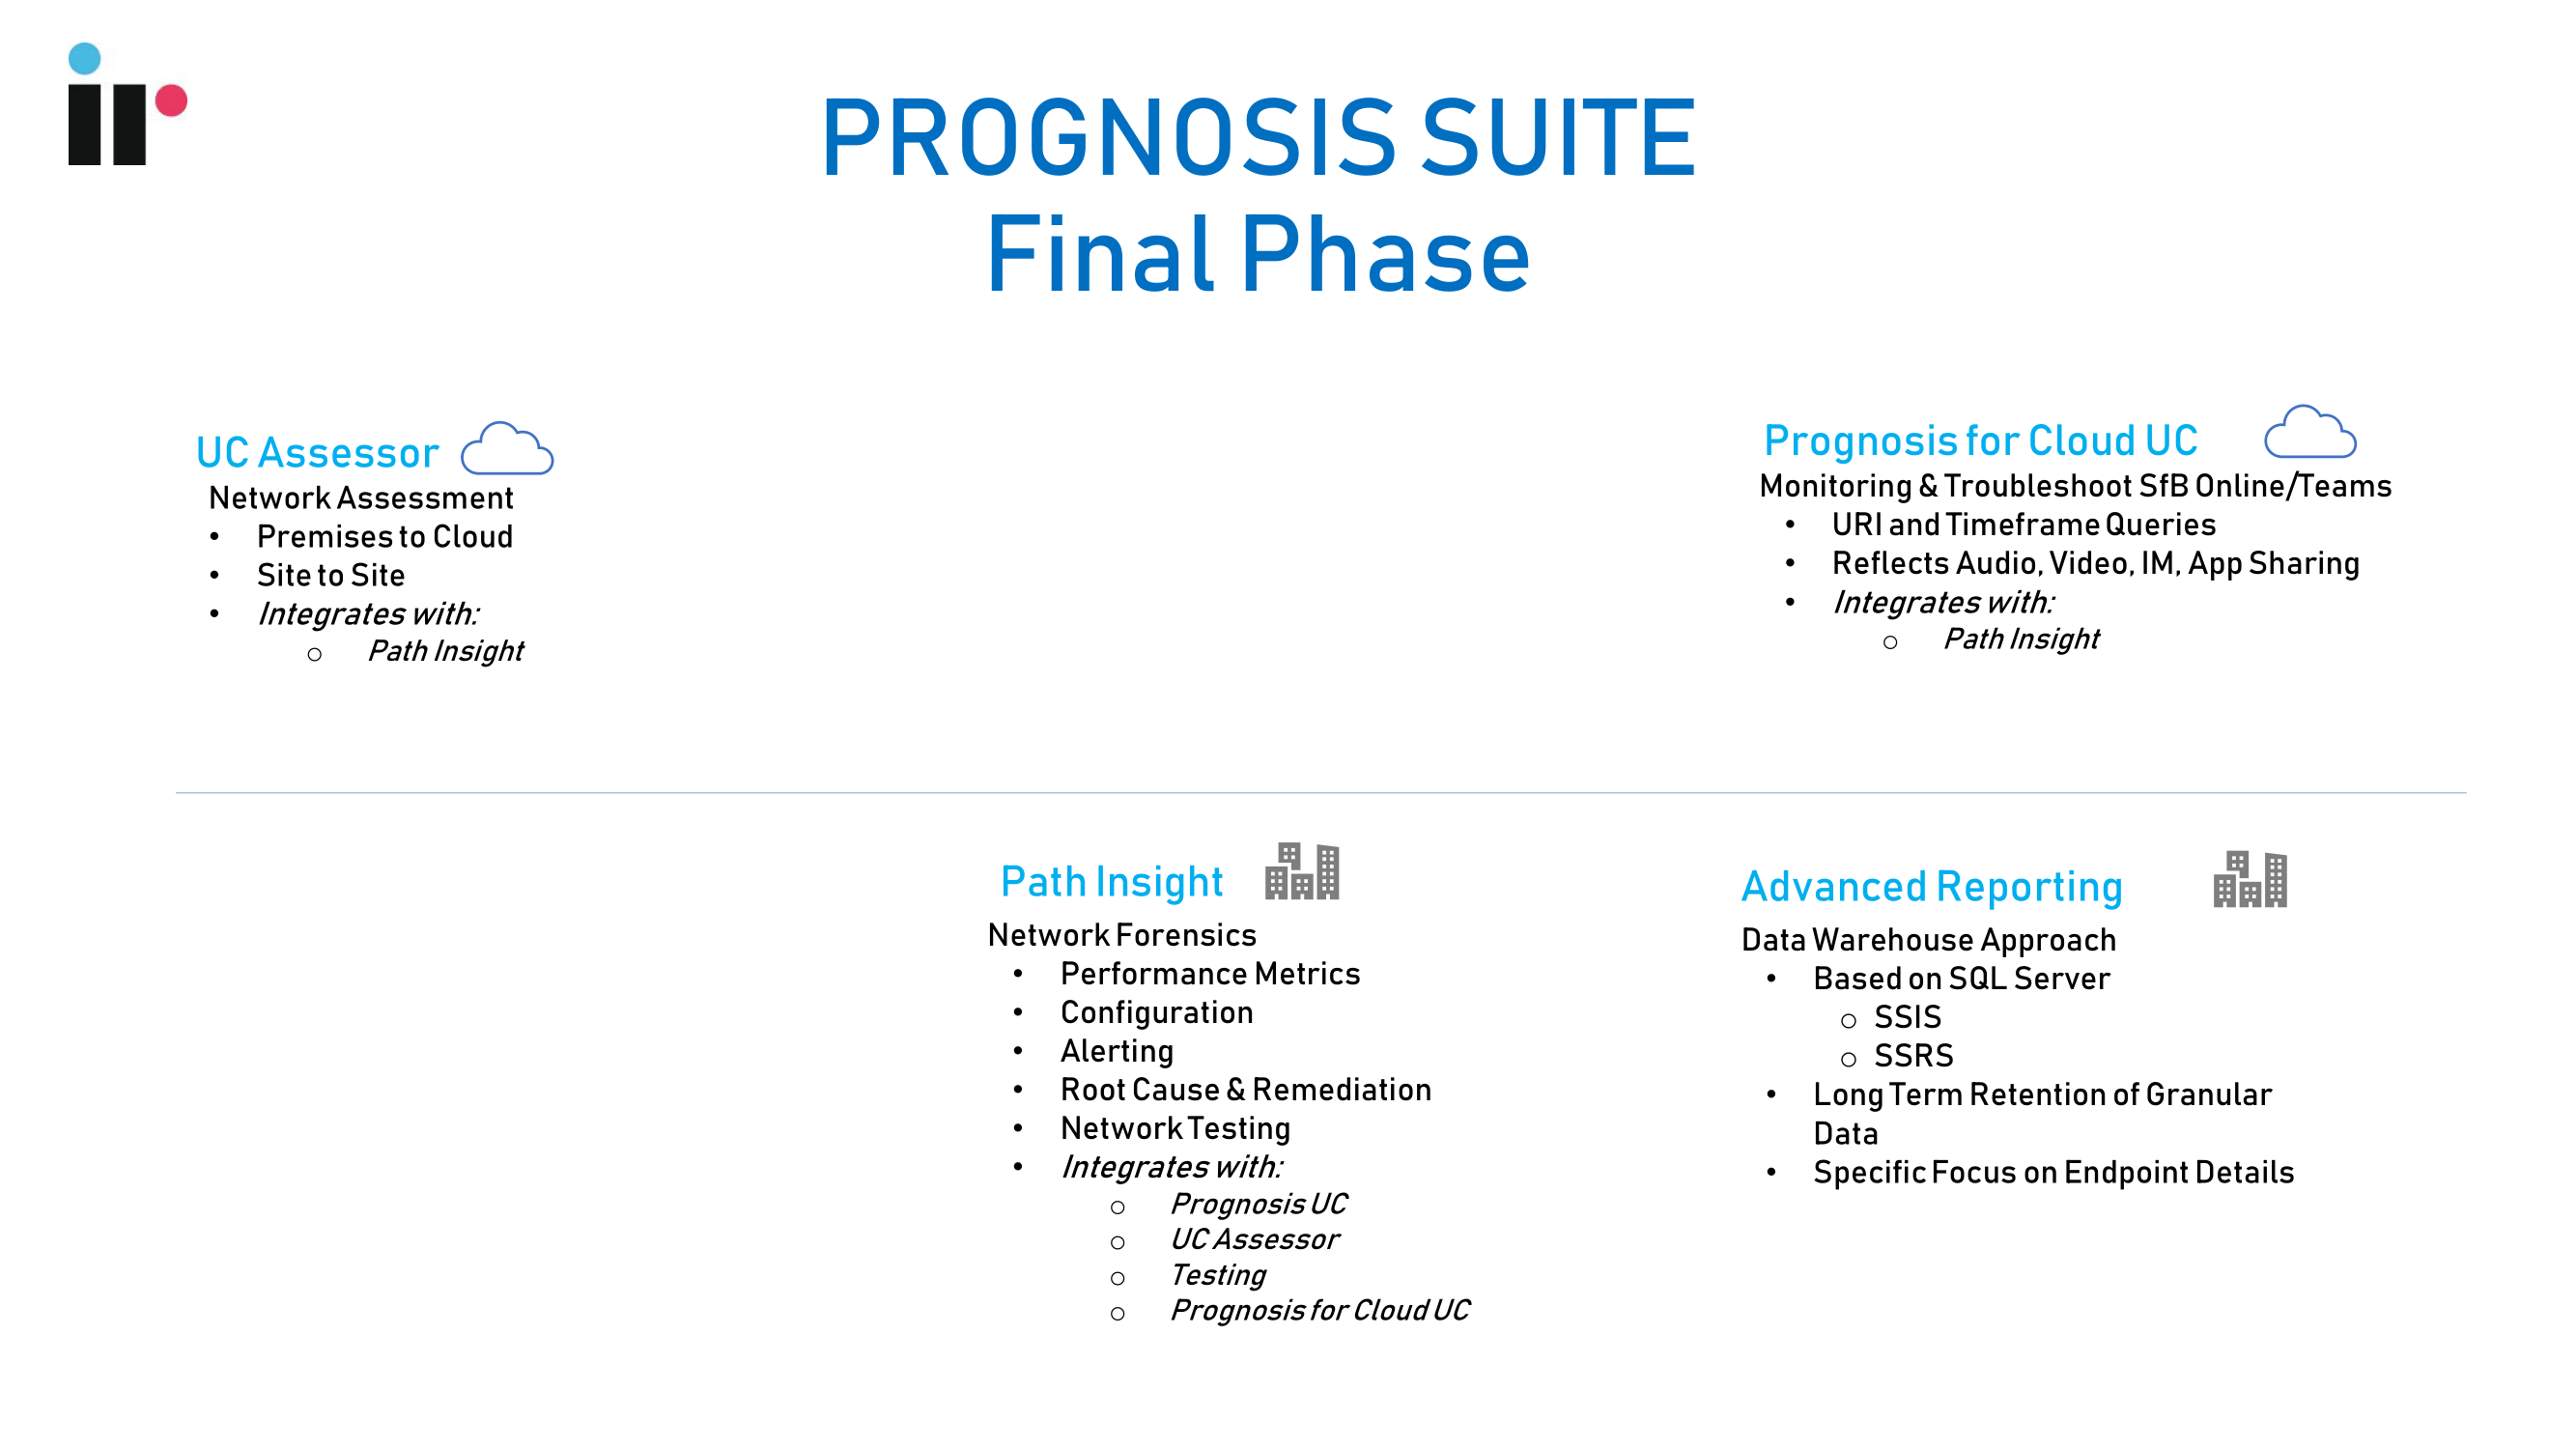 Prognosis suite for Microsoft teams deployments final phase